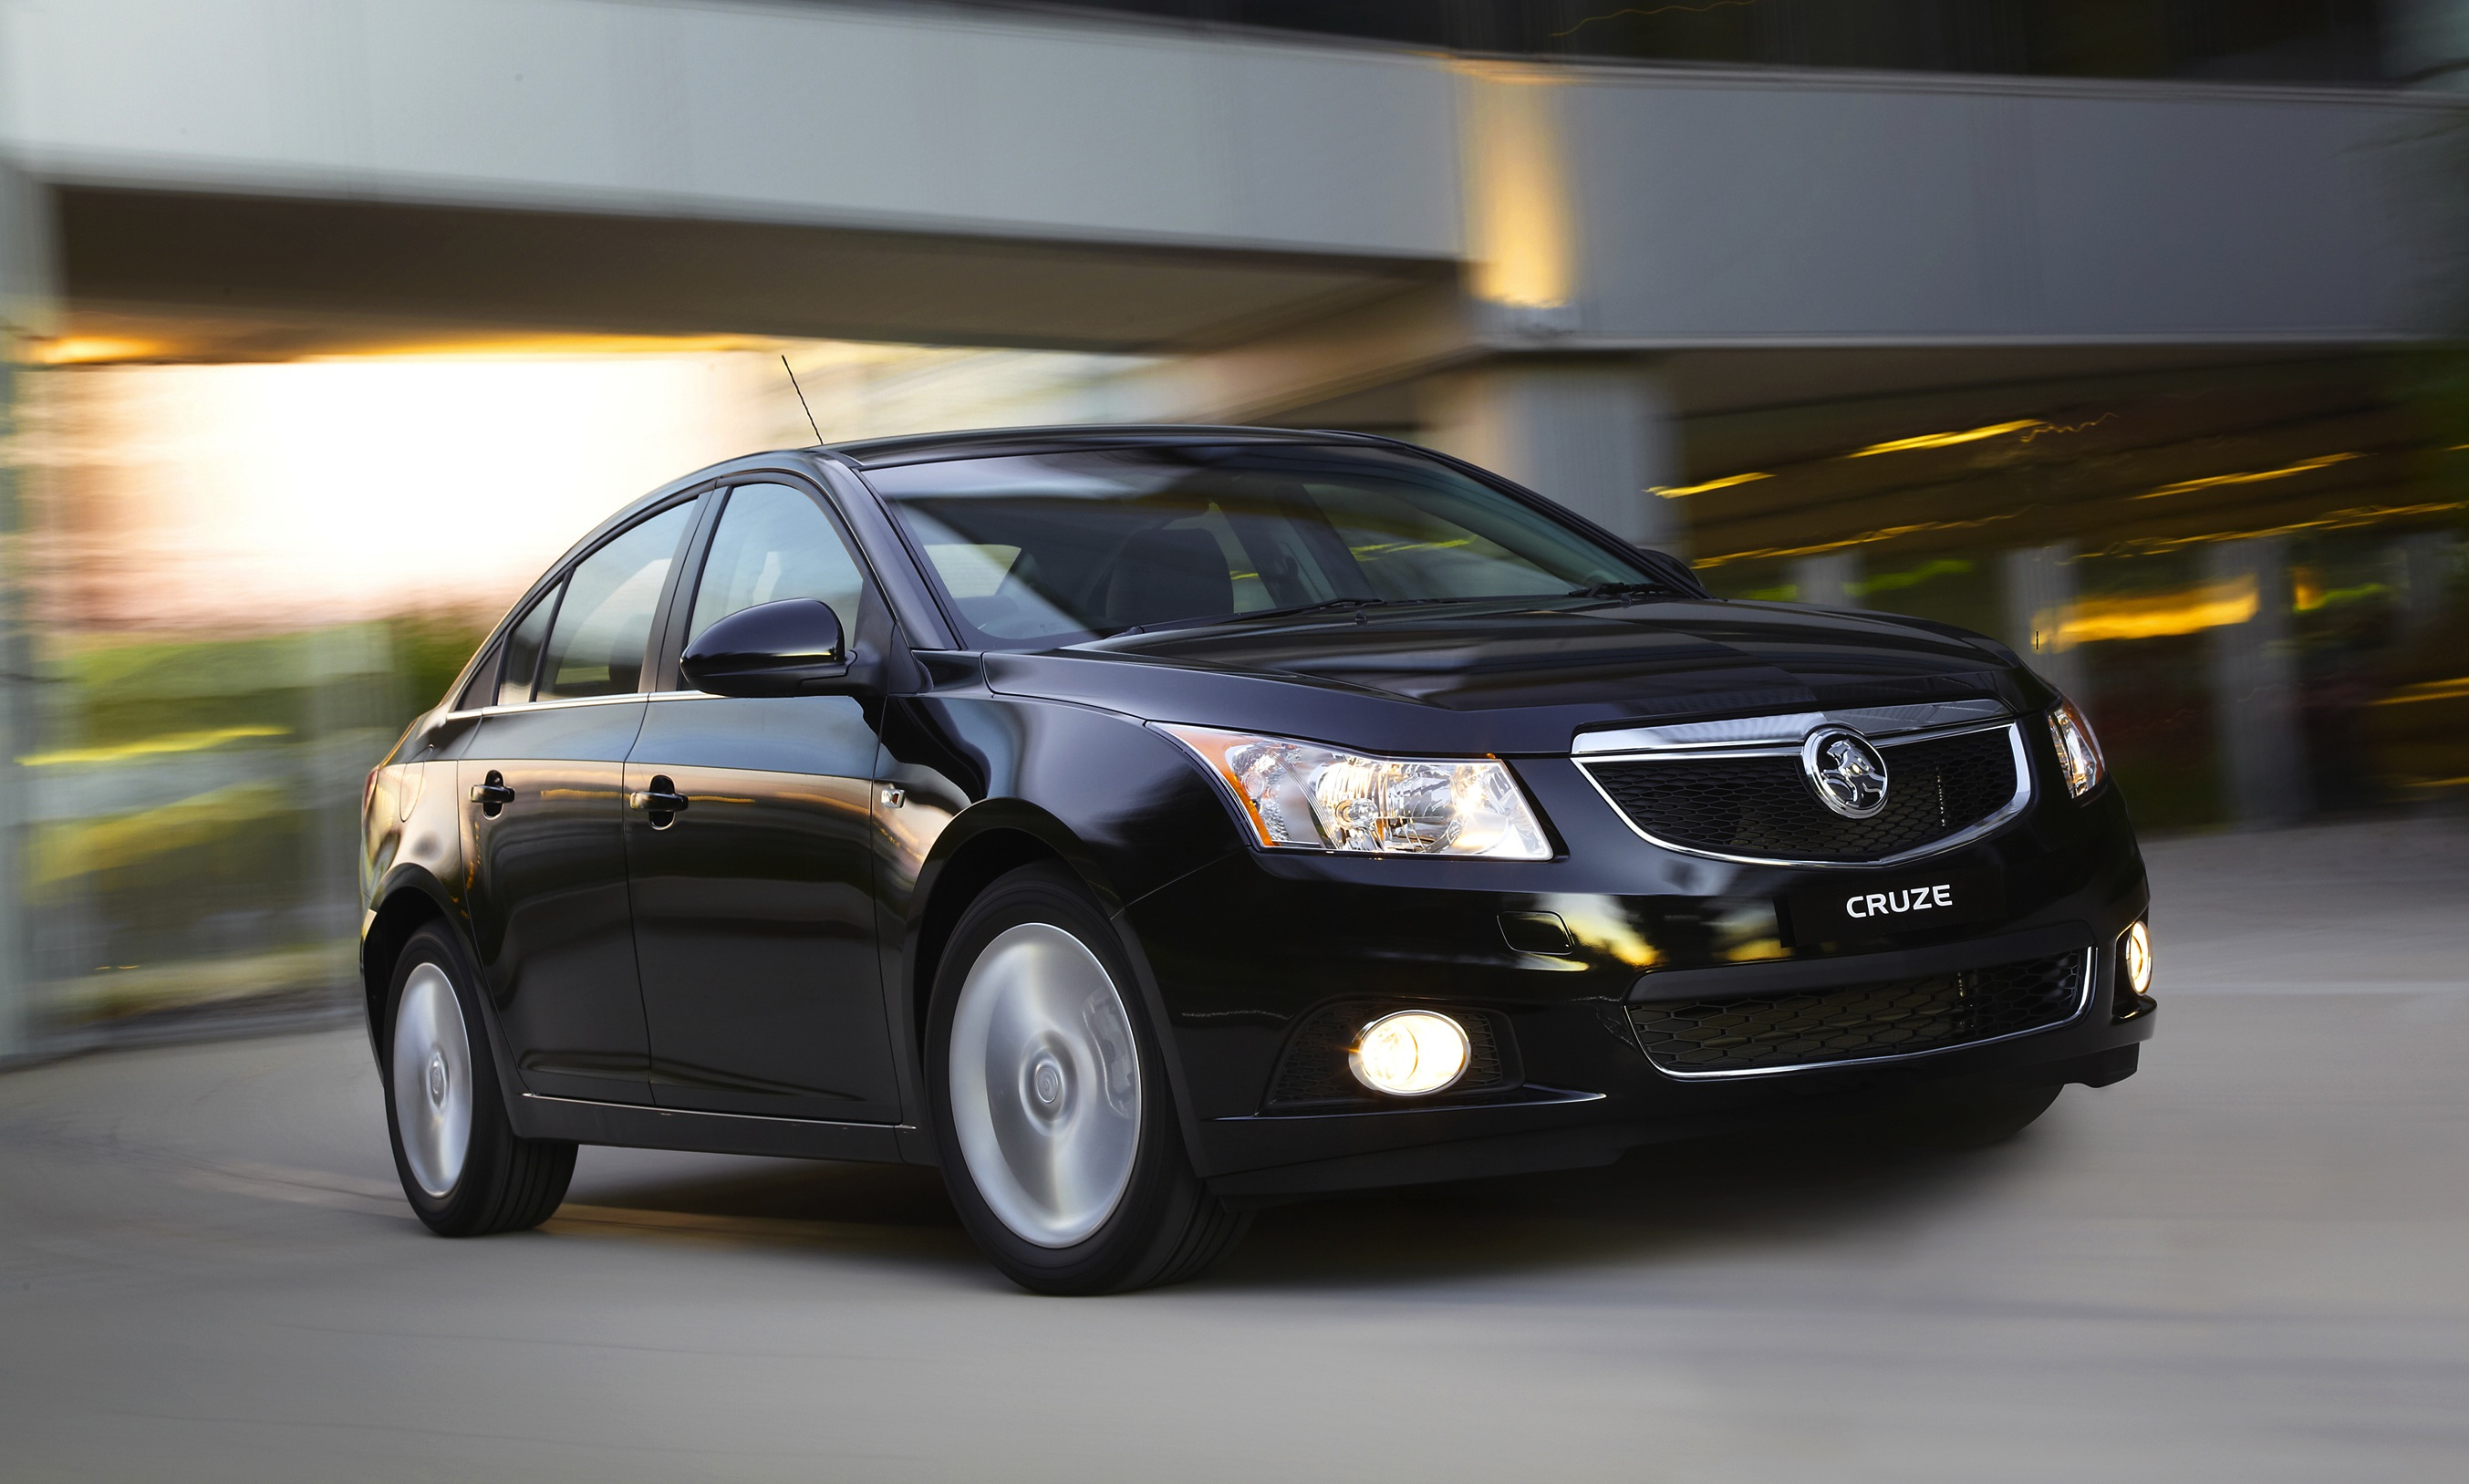 holden cruze images